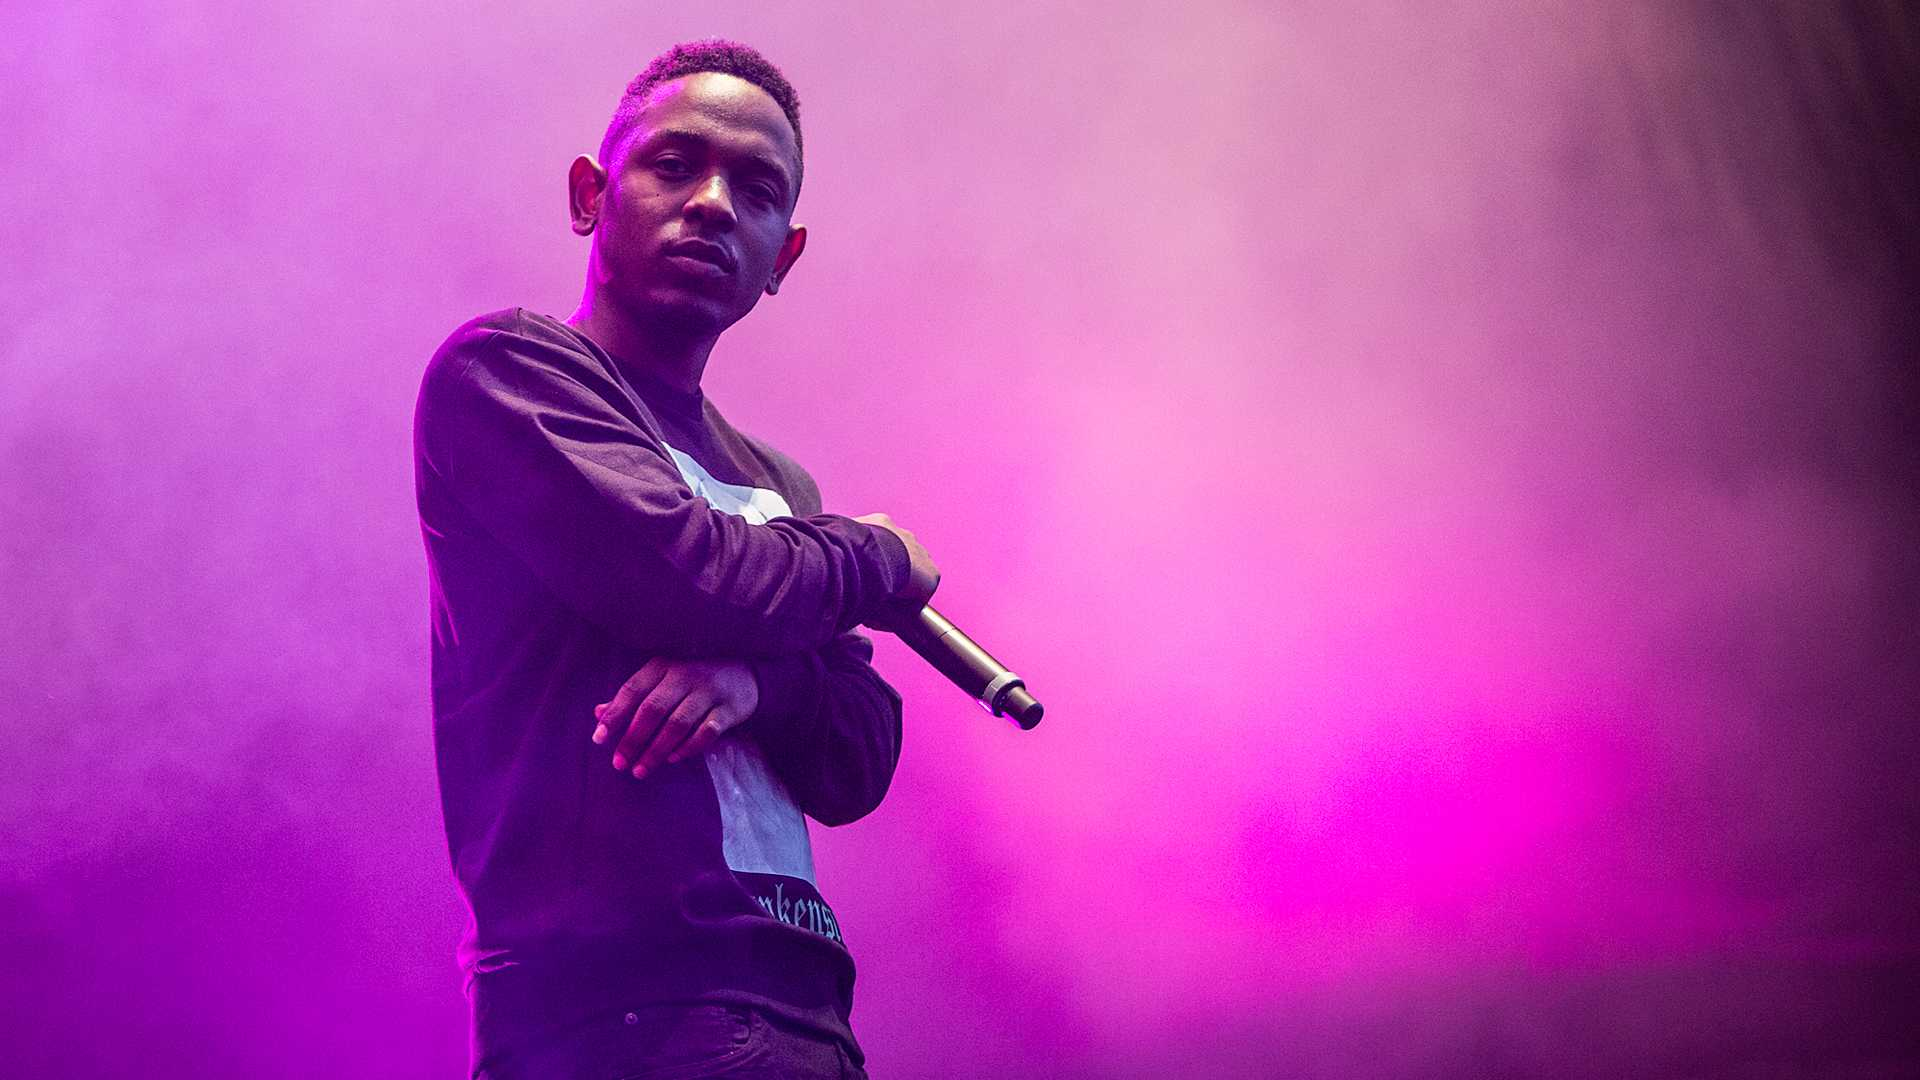 Arguably one of the best rappers of the 21st century, Kendrick Lamar. Photo courtesy of Kim Erlandsen, NRK P3